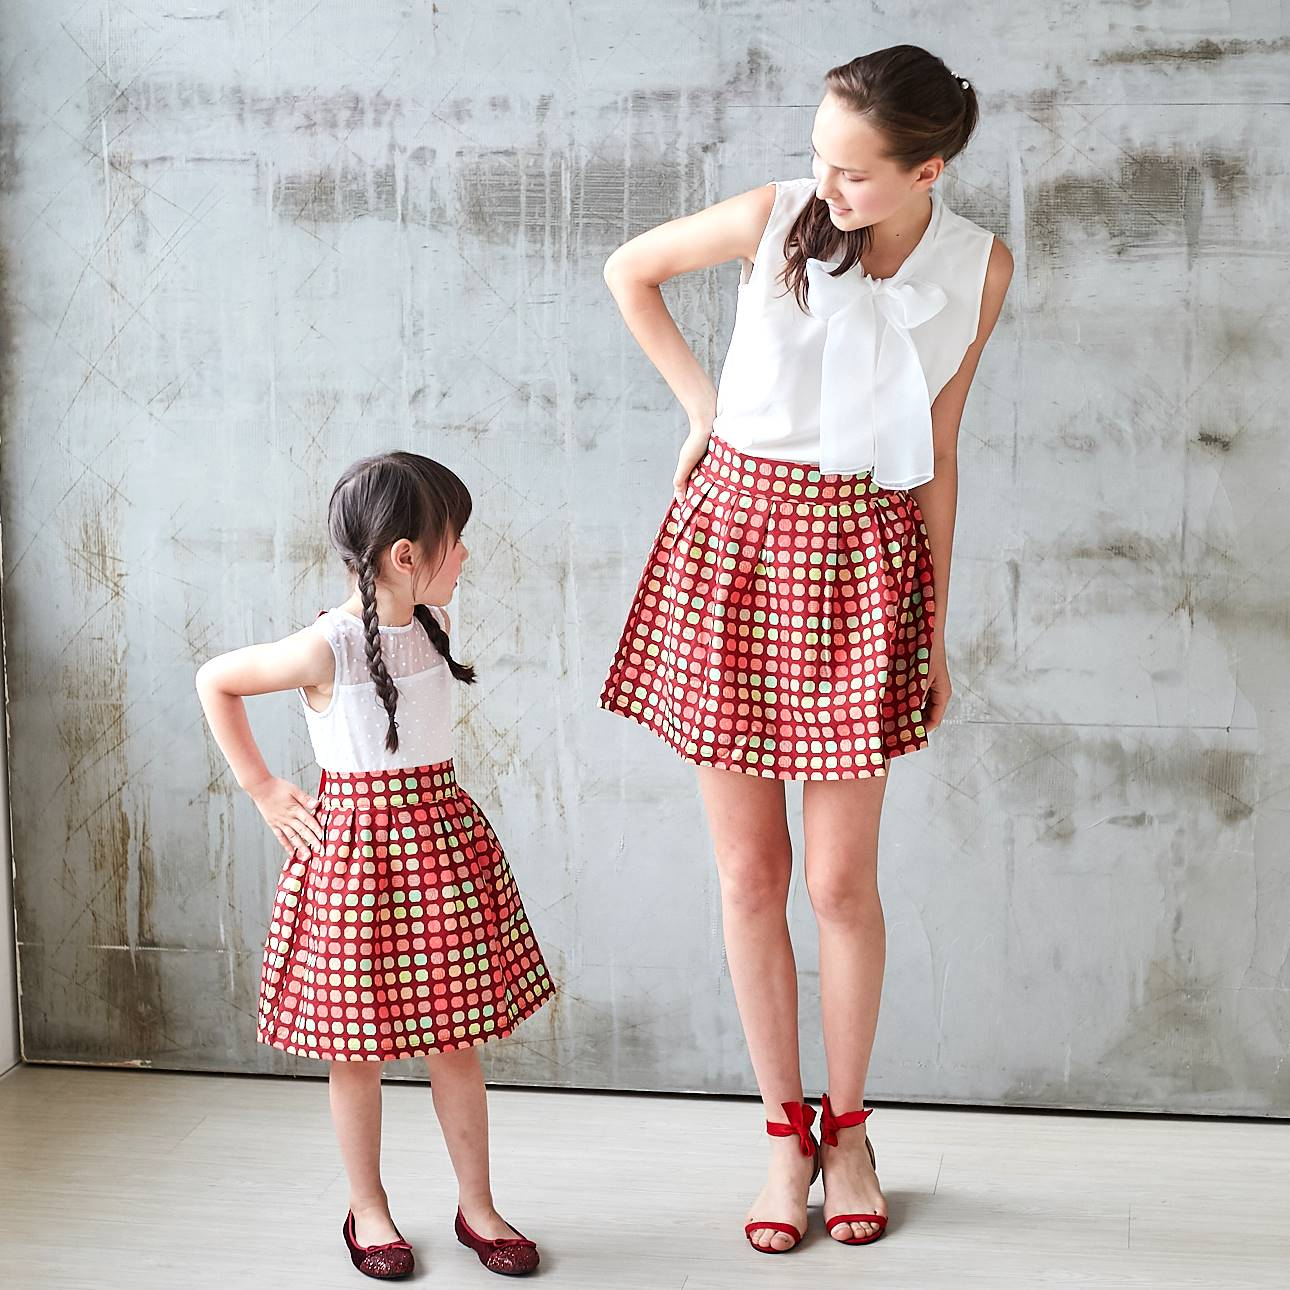 (Mommy & Me) Candy Canes skirt (set of 2) - Bunny n Bloom Mommy & Me Dress